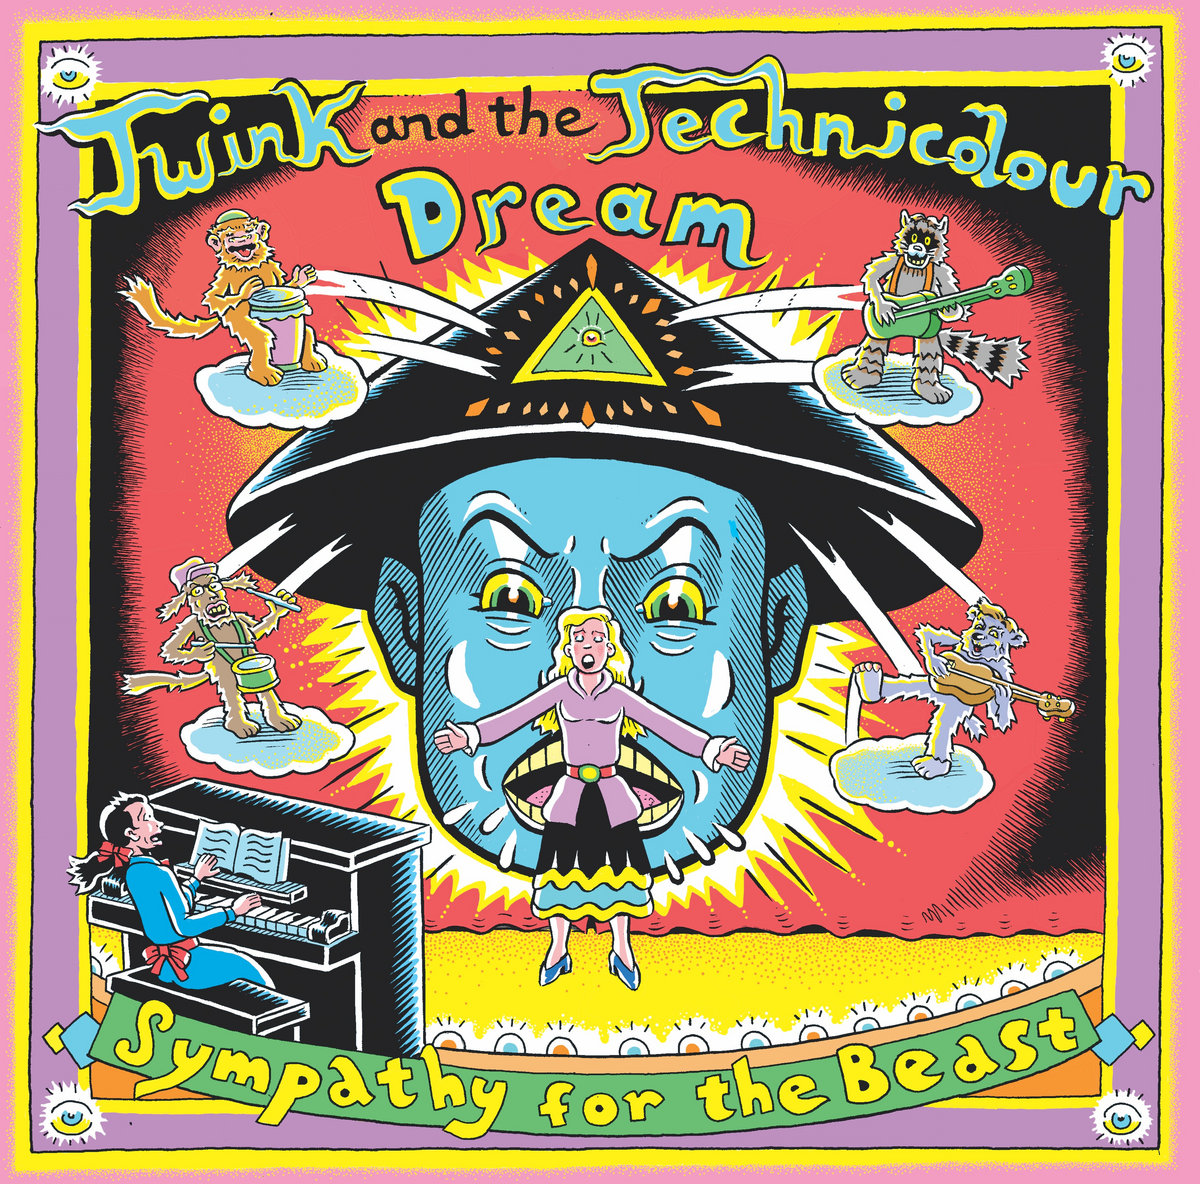 The Jinn-Vision (from The Scented Garden of Abdullah the Satirist of